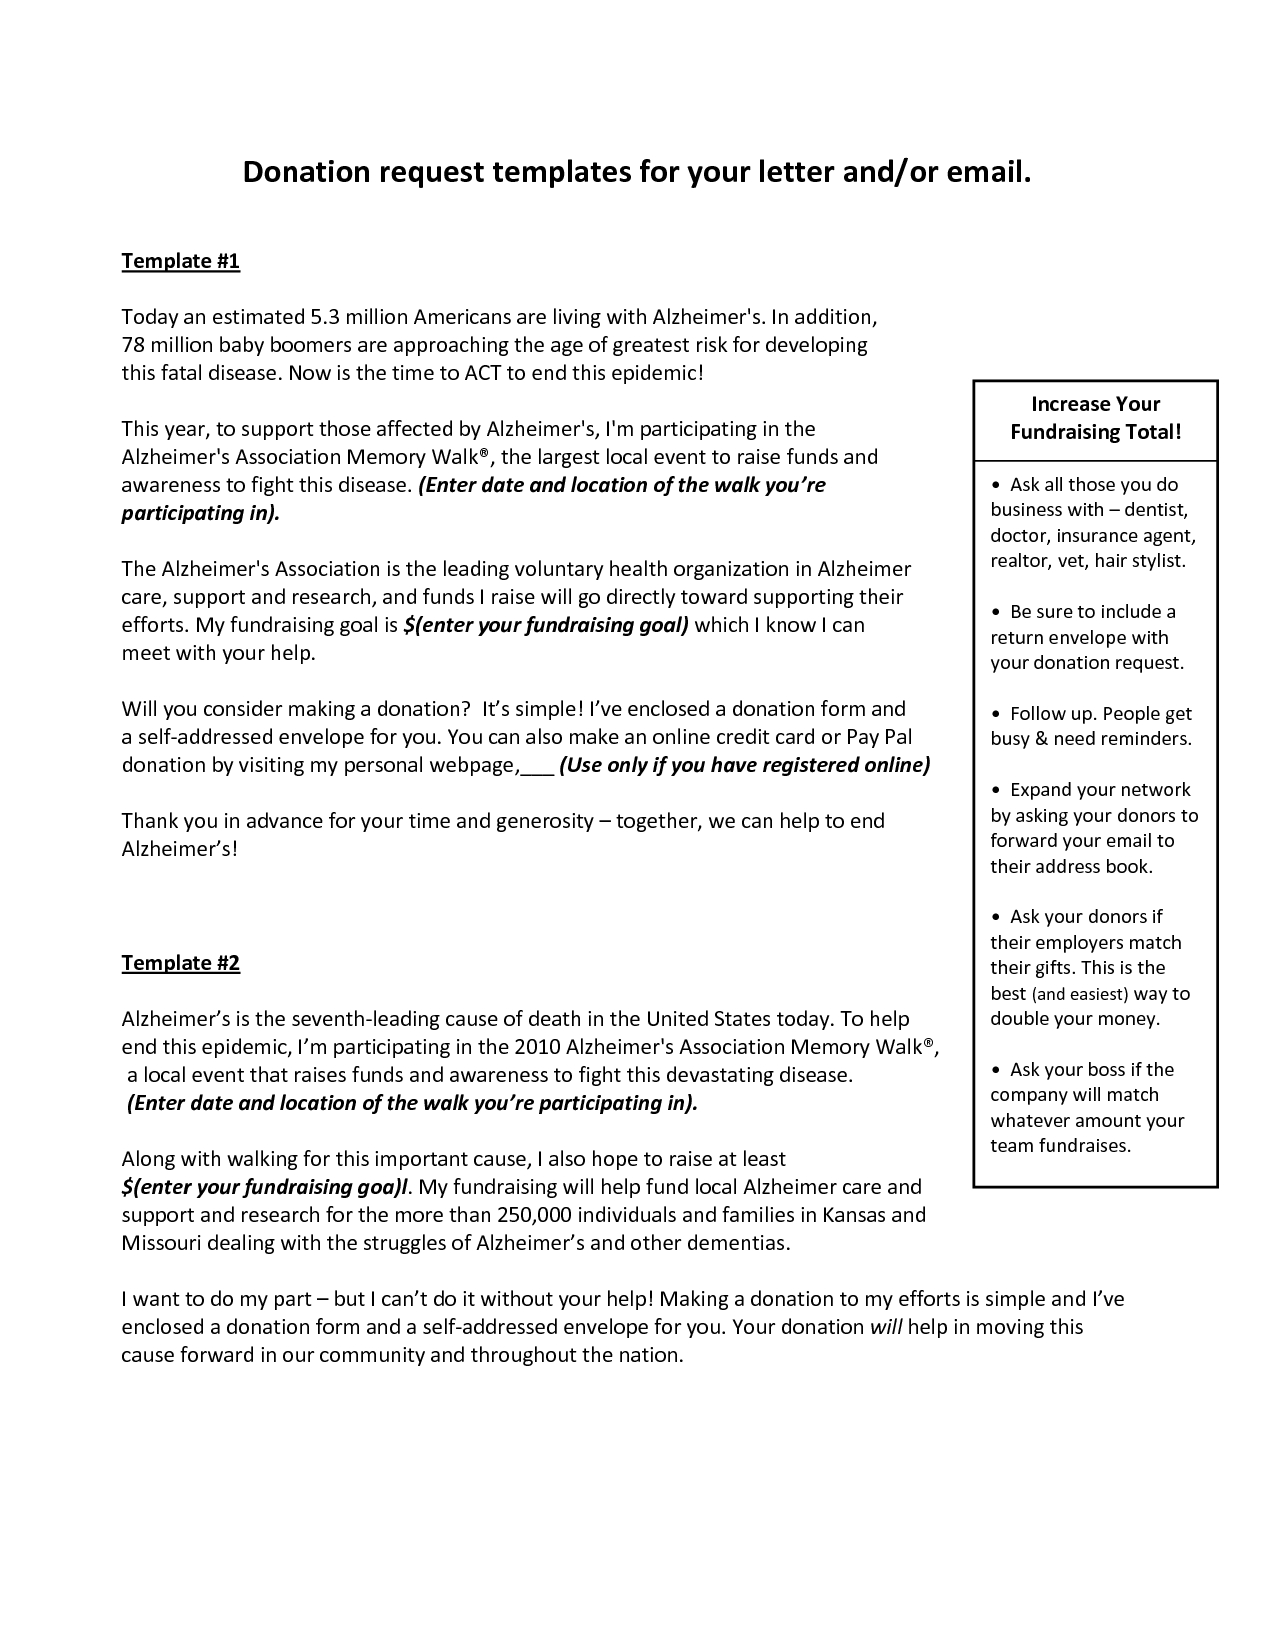 Silent Auction Donation Request Letter Template - How to Write A solicitation Letter for Donations Choice Image